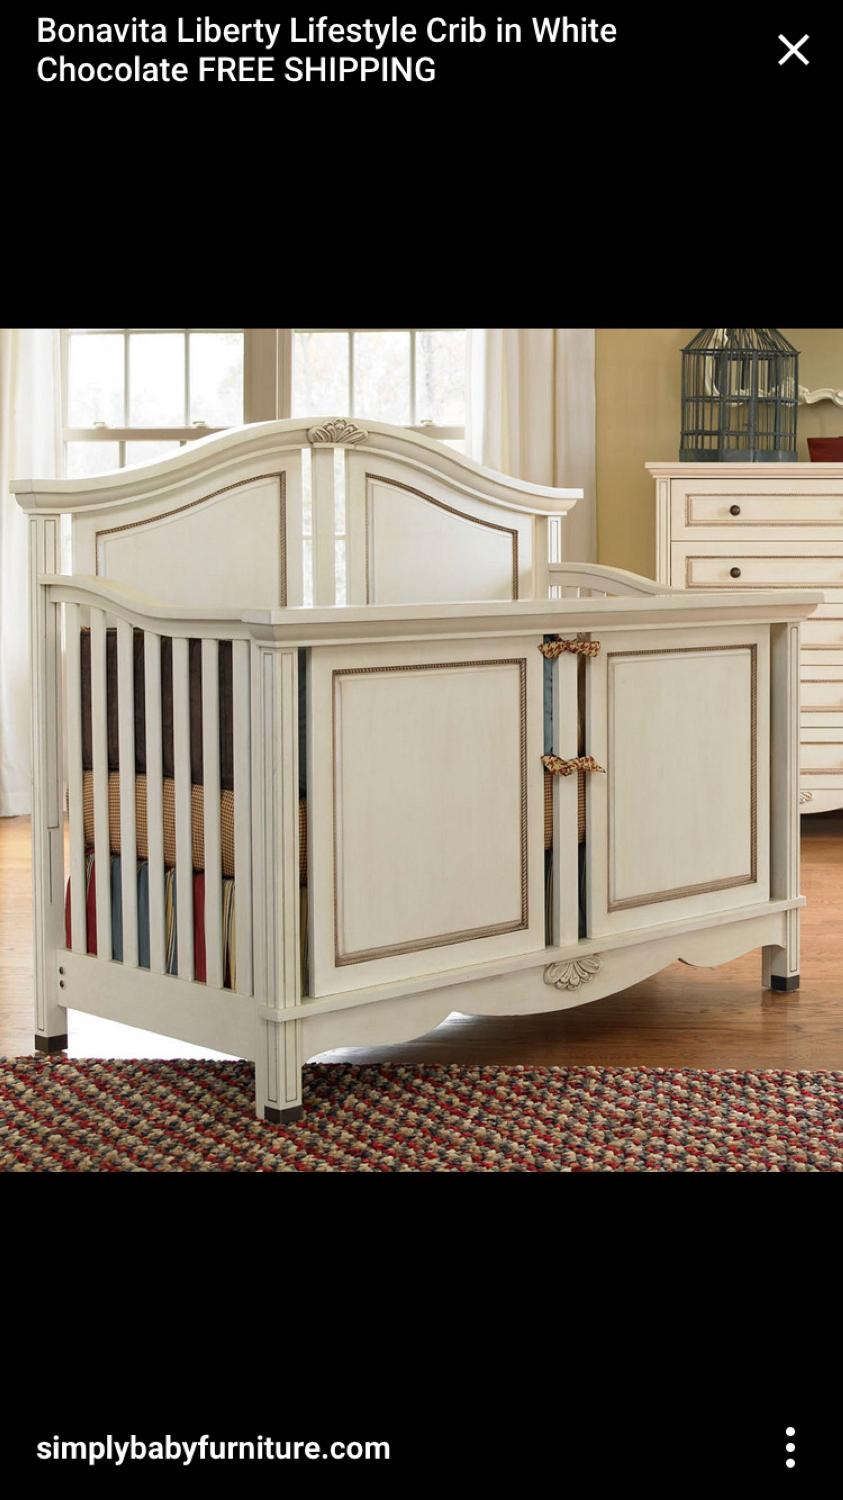 Bonavita crib for sale used - Find More Bonavita Liberty Convertible Crib For Sale At Up To 90 Off Mountain Brook Al